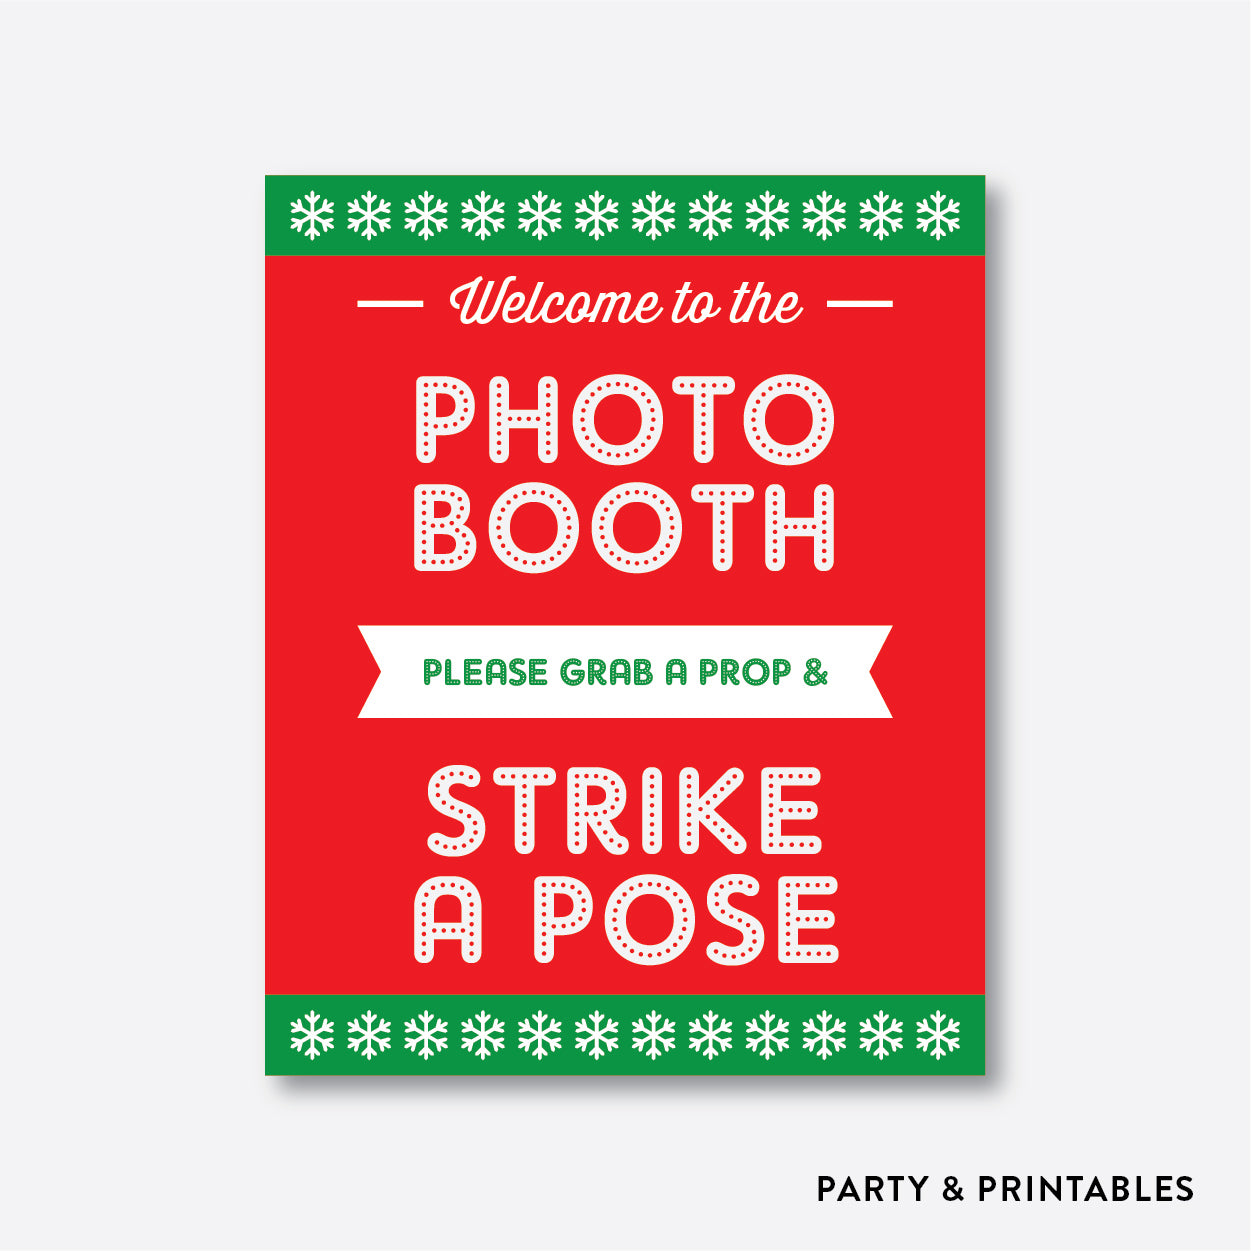 image about Free Printable Photo Booth Sign identify Xmas Image Booth Props + Picture Booth Indication / Immediate Obtain (PBP.06)